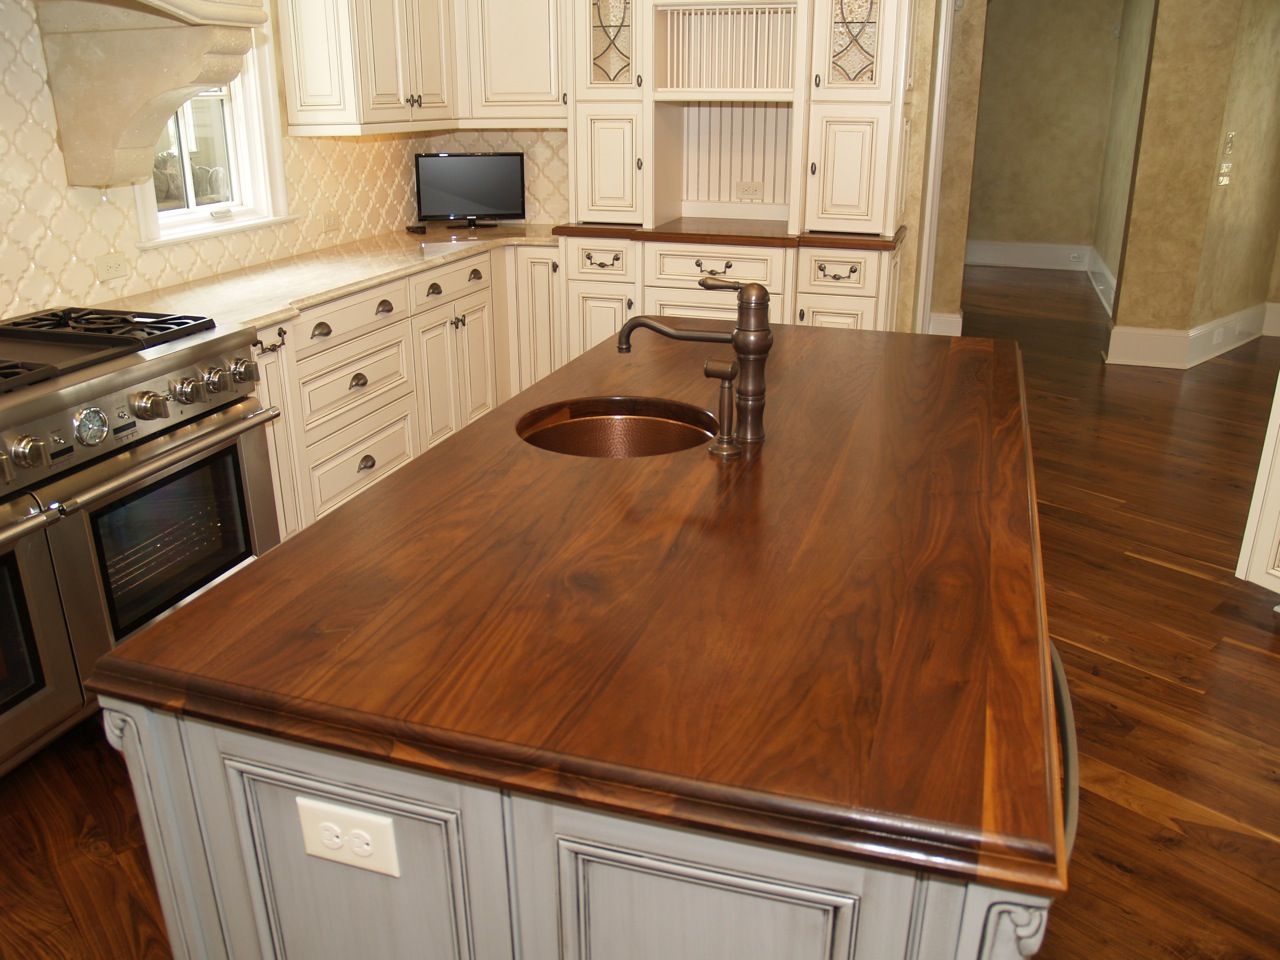 countertops wood countertops kitchen Walnut kitchen countertop wide plank flat grain construction 1 75 thick large double roman ogee edge undermount sink with permanent finish